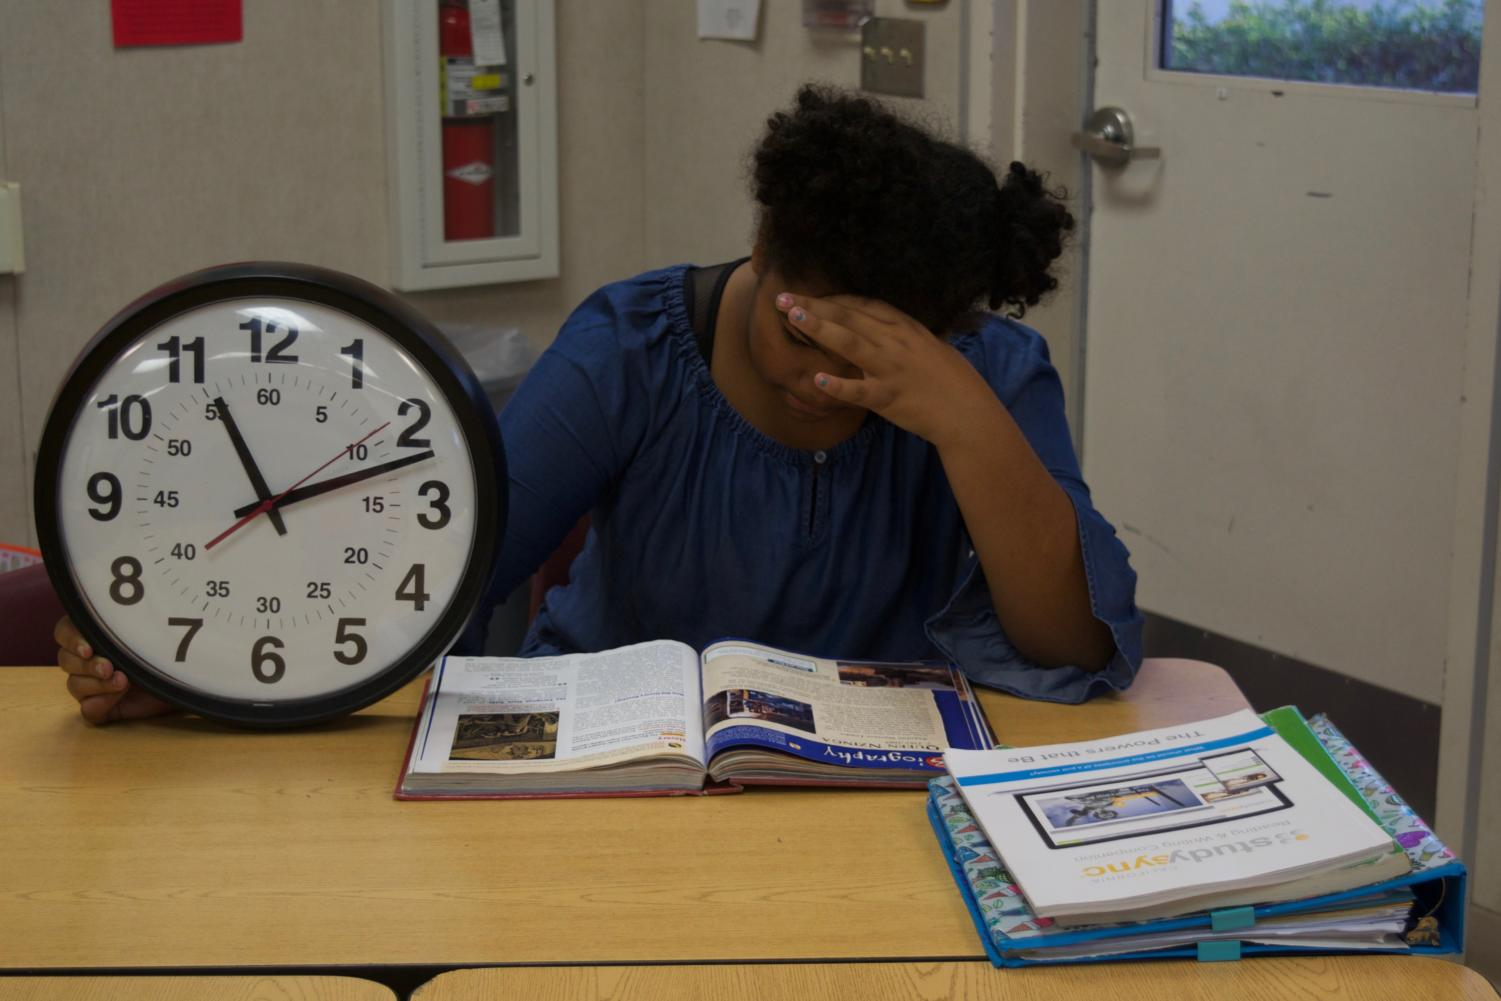 Are students missing too much class time to go to assemblies?